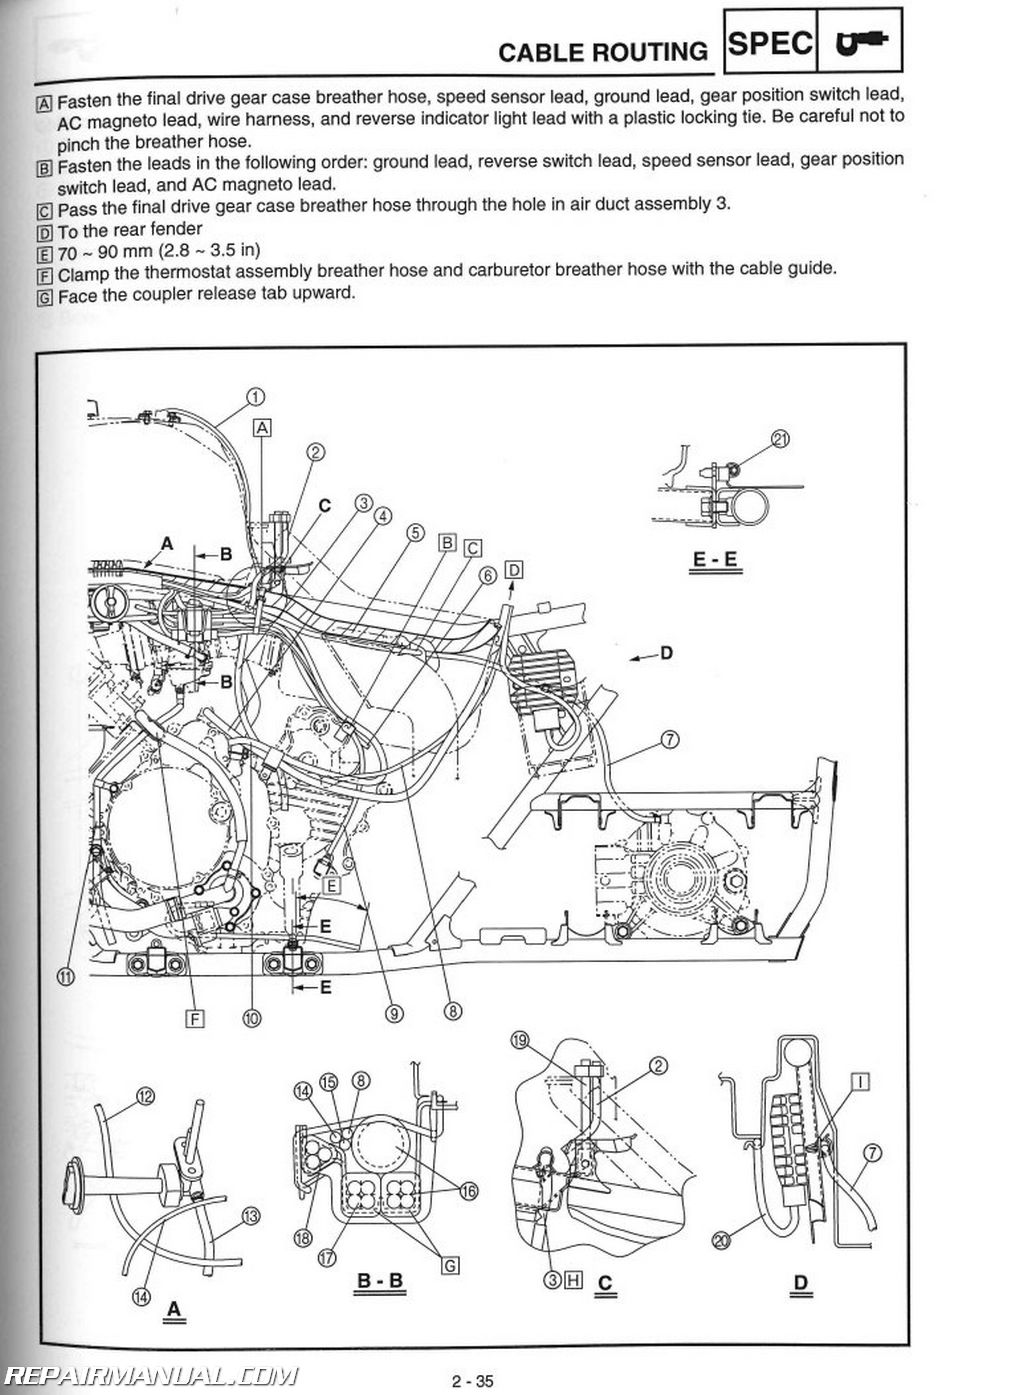 Yamaha Rhino 450 Wiring Guide And Troubleshooting Of Diagram Yfm660fa Grizzly 660 Atv Service Manual 2003 2008 2006